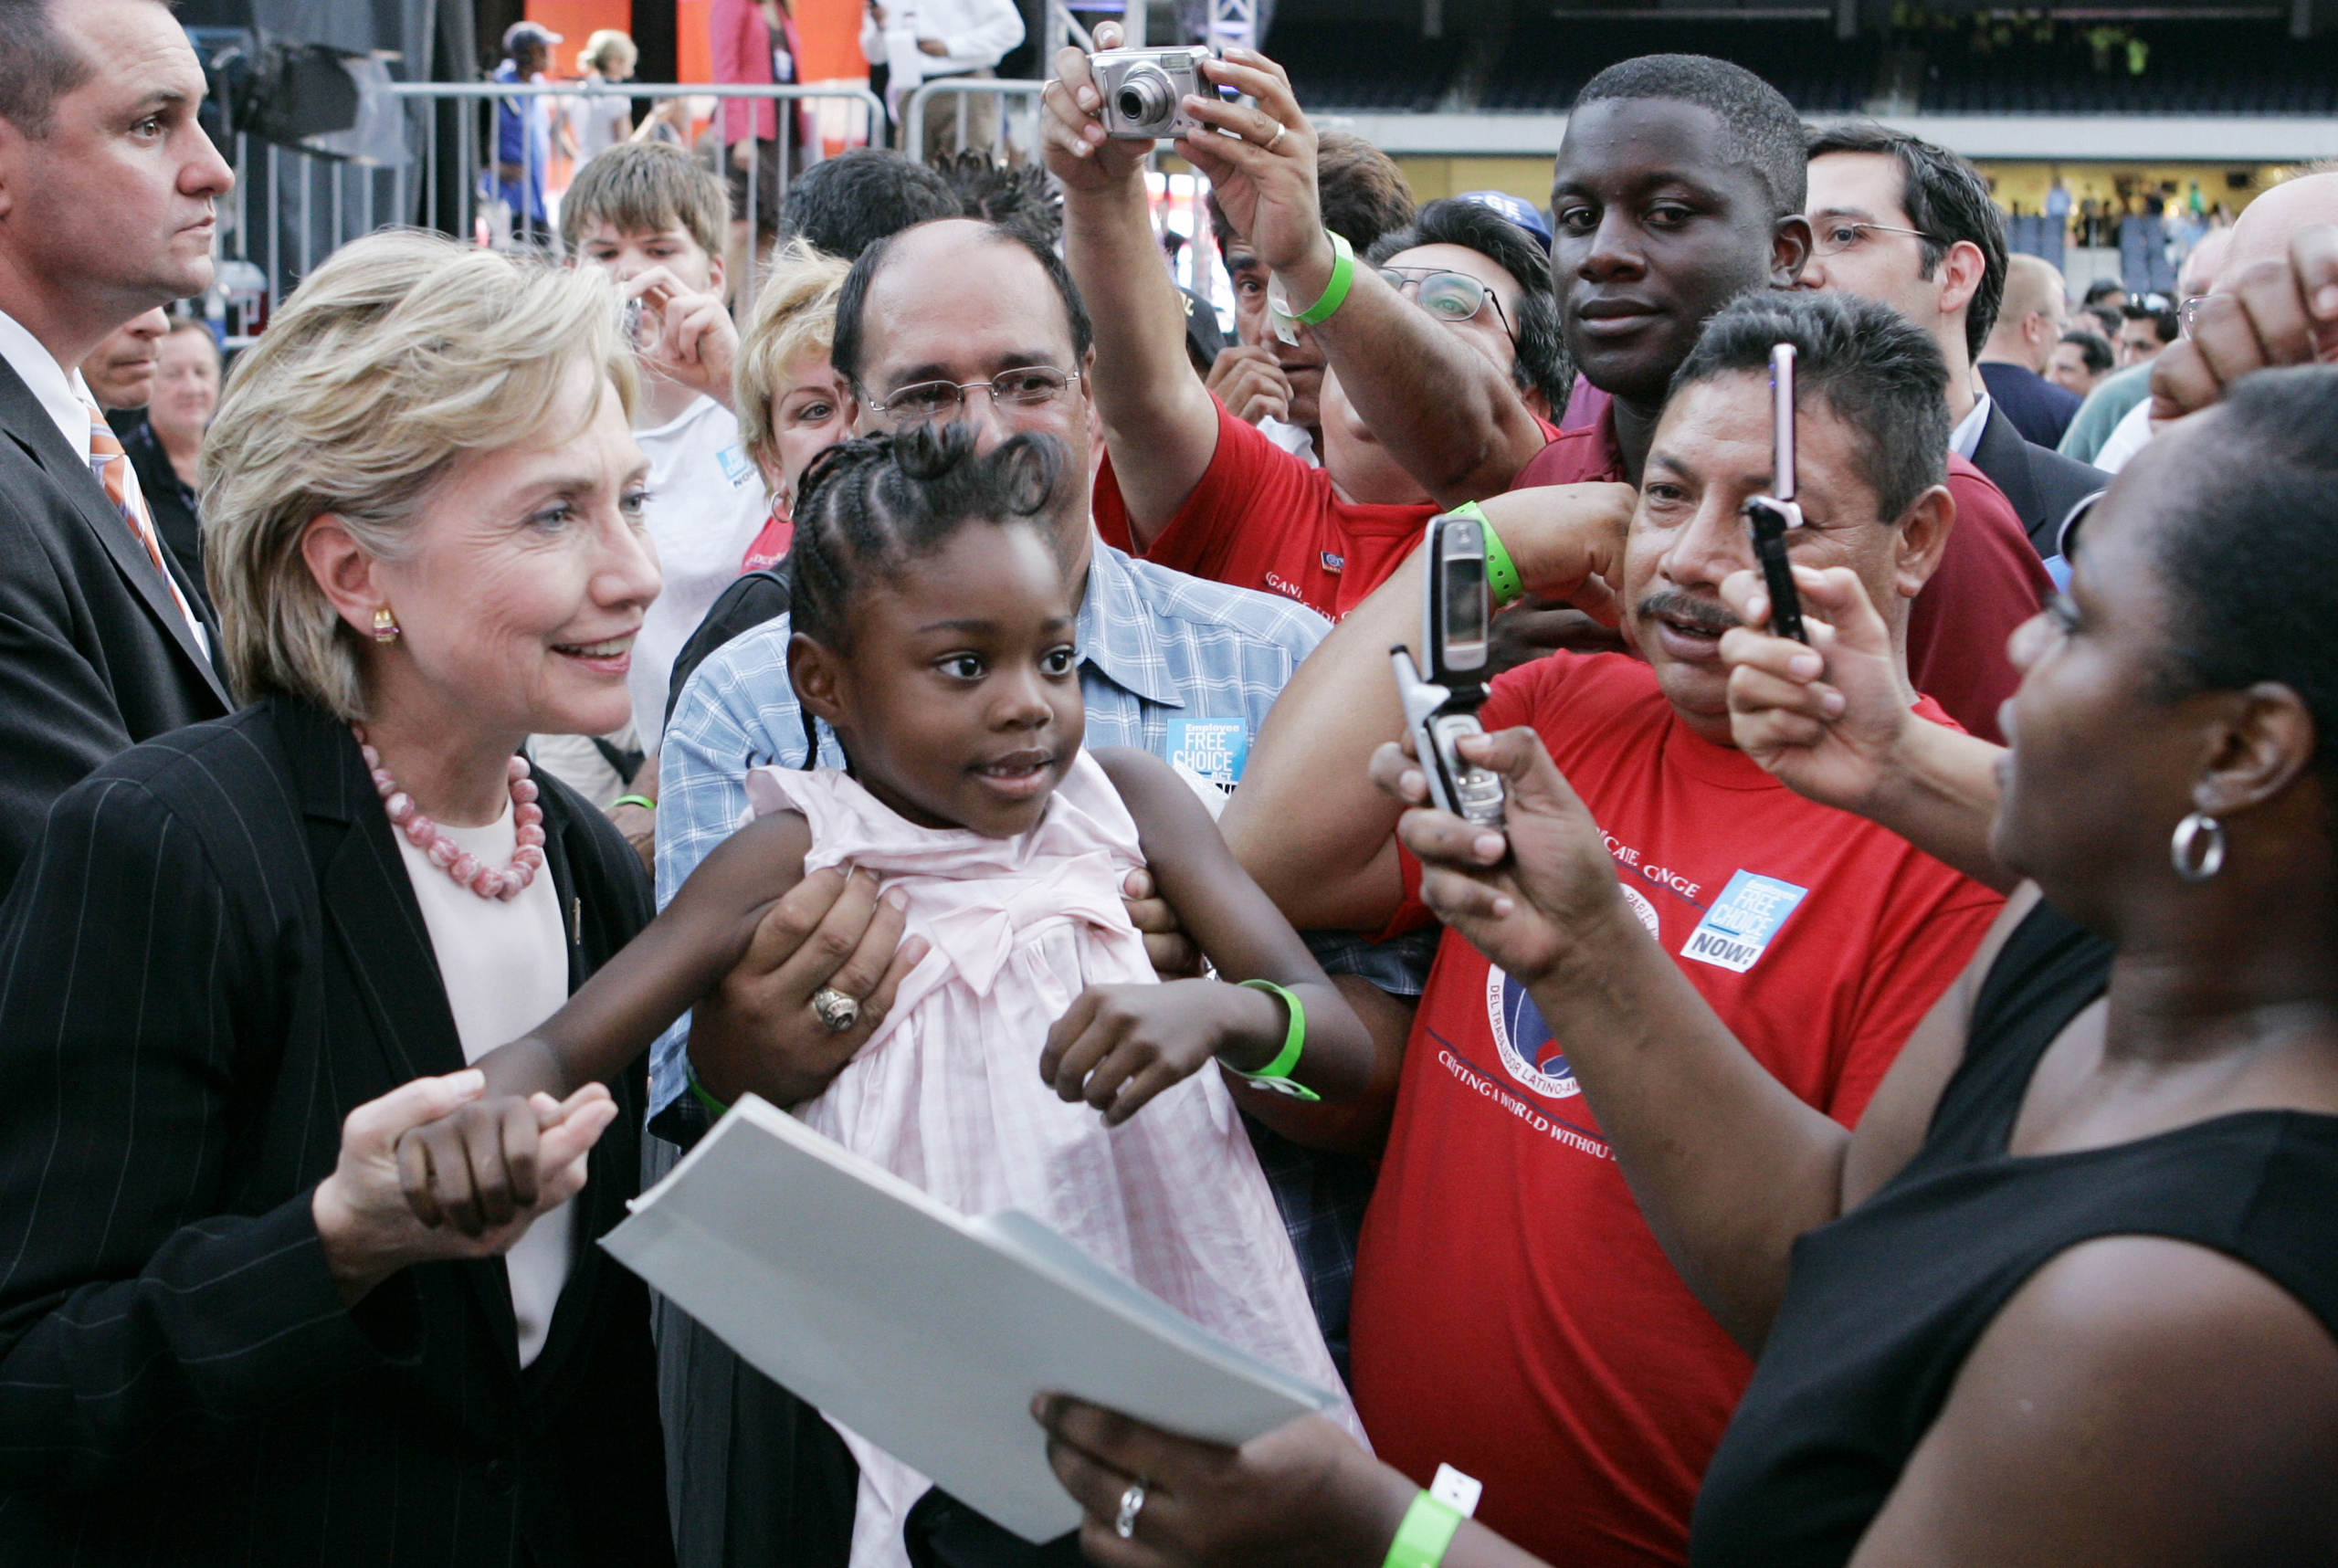 Hillary Clinton poses with a young girl after a presidential forum hosted by the AFL-CIO at Soldier Field in Chicago, on Aug. 7, 2007.